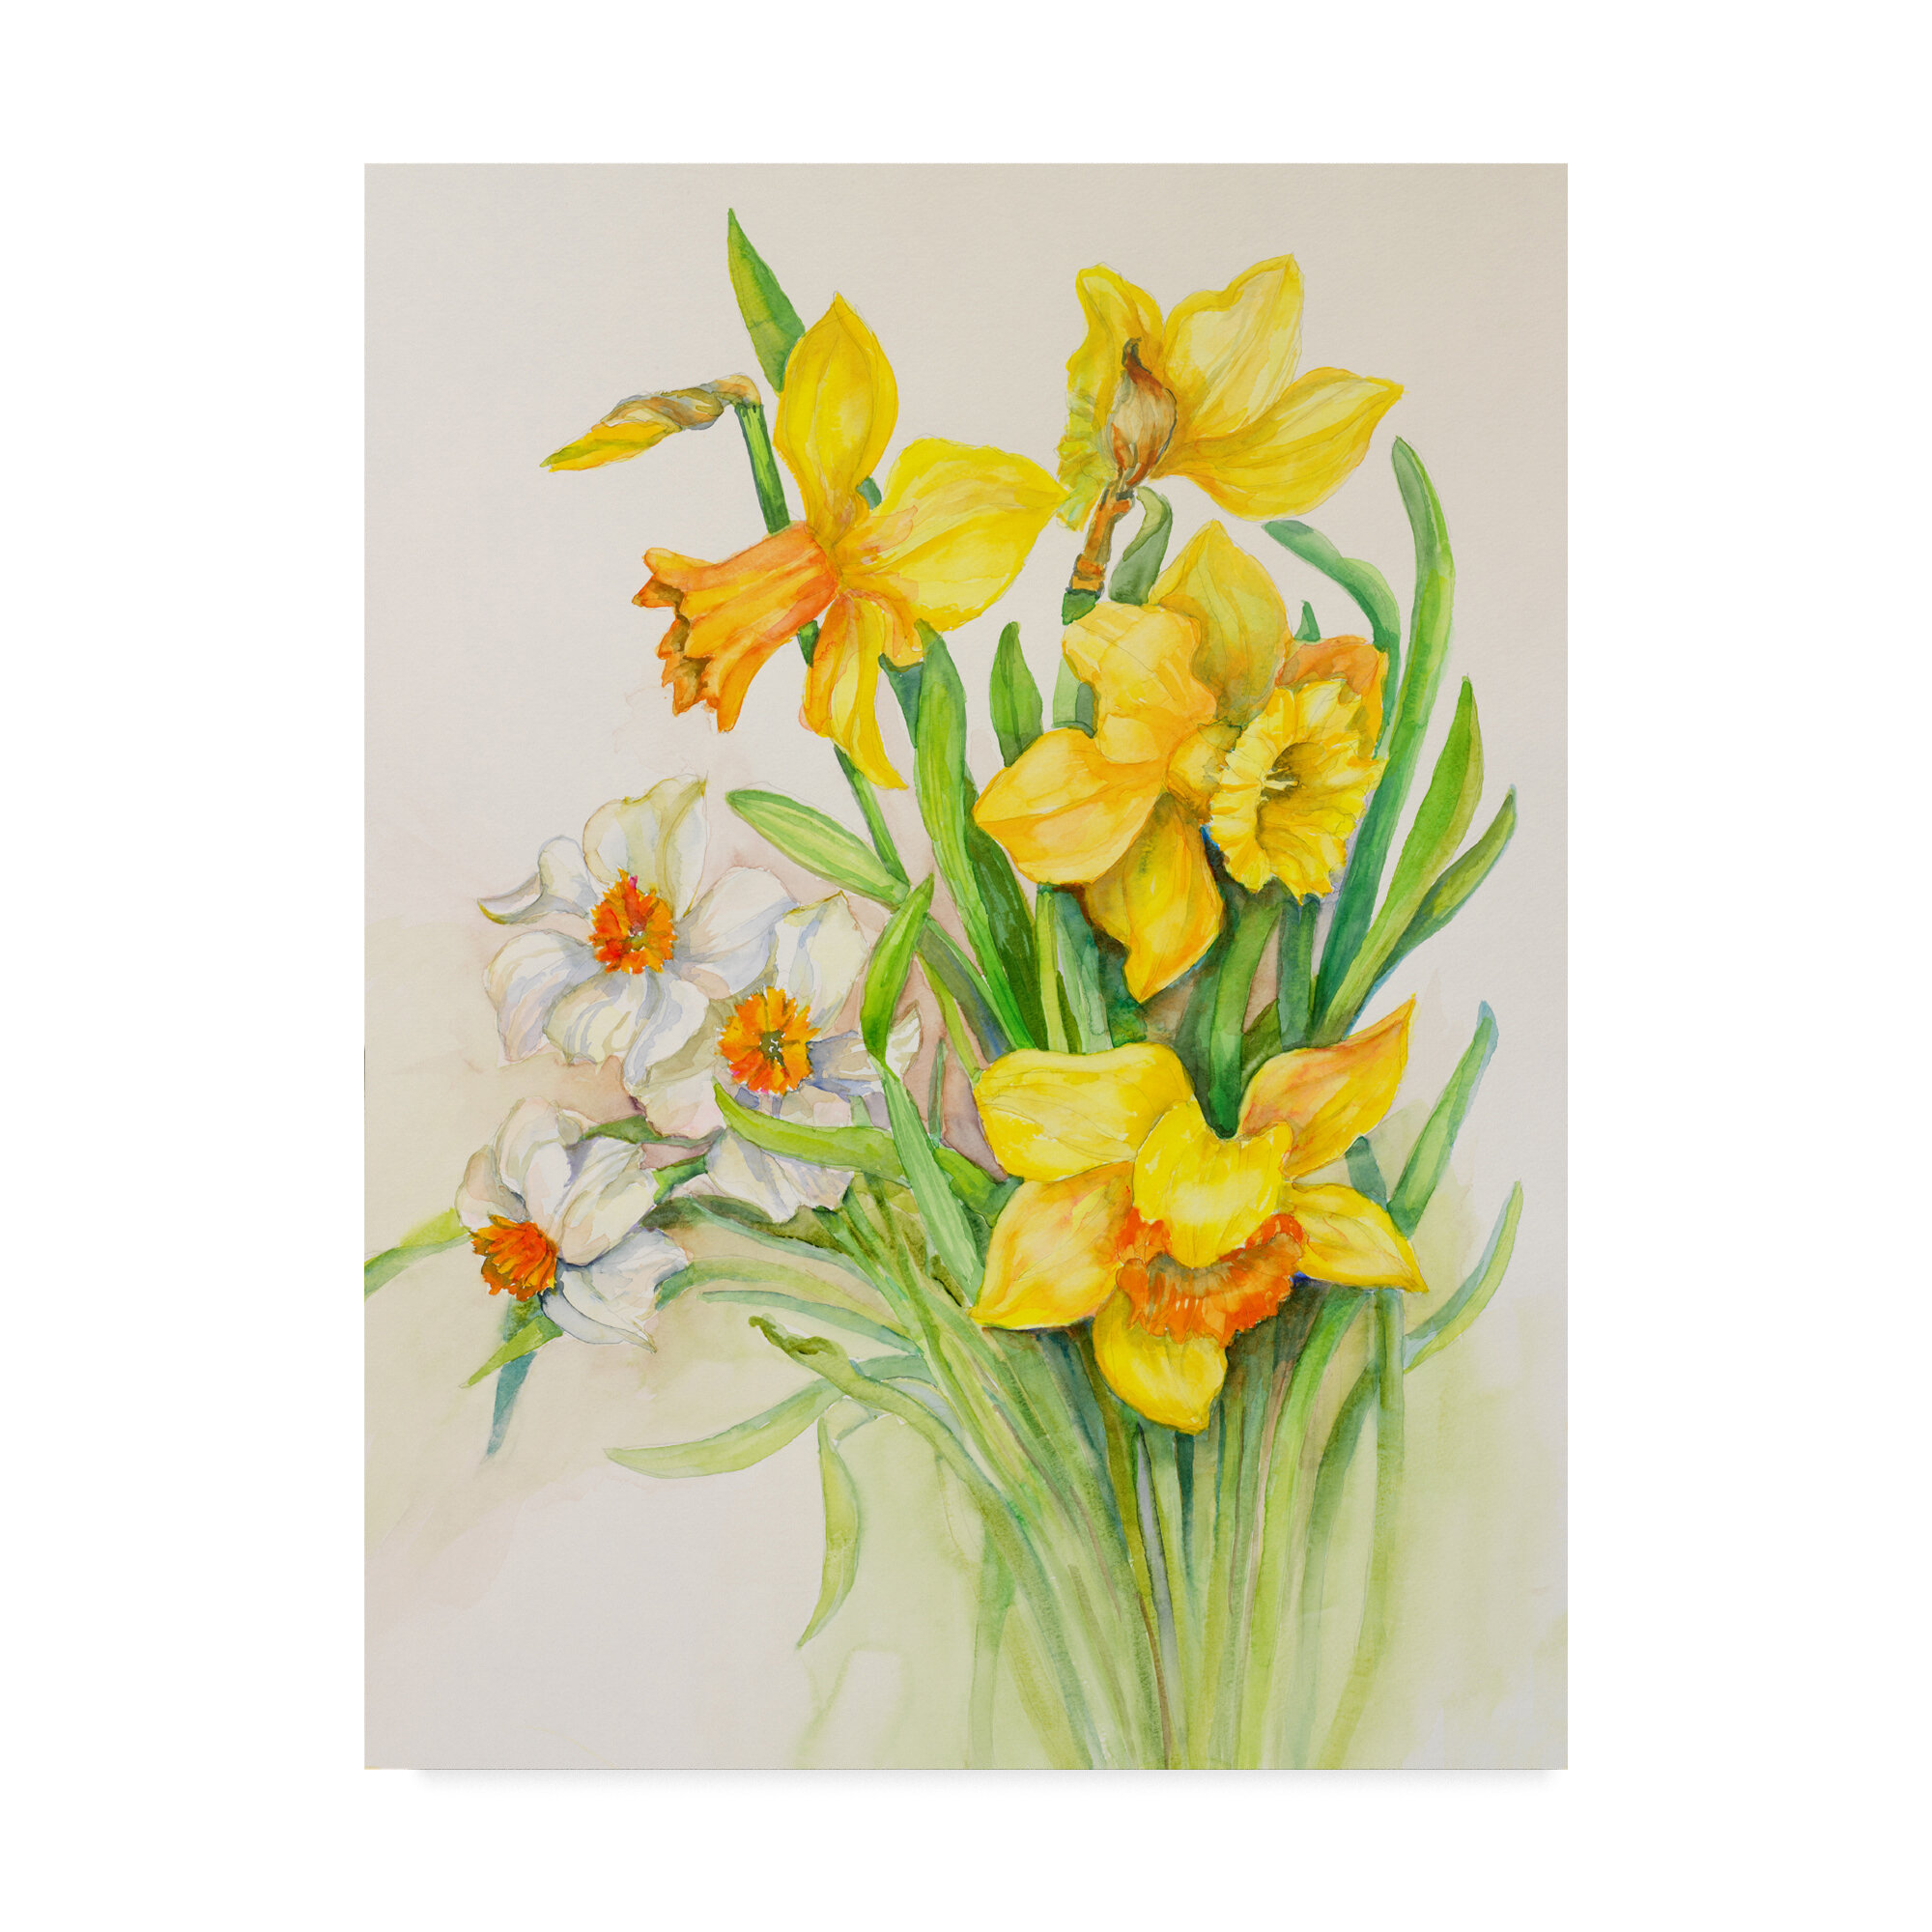 Trademark Art Daffodils Springs Calling Card Acrylic Painting Print On Wrapped Canvas Wayfair